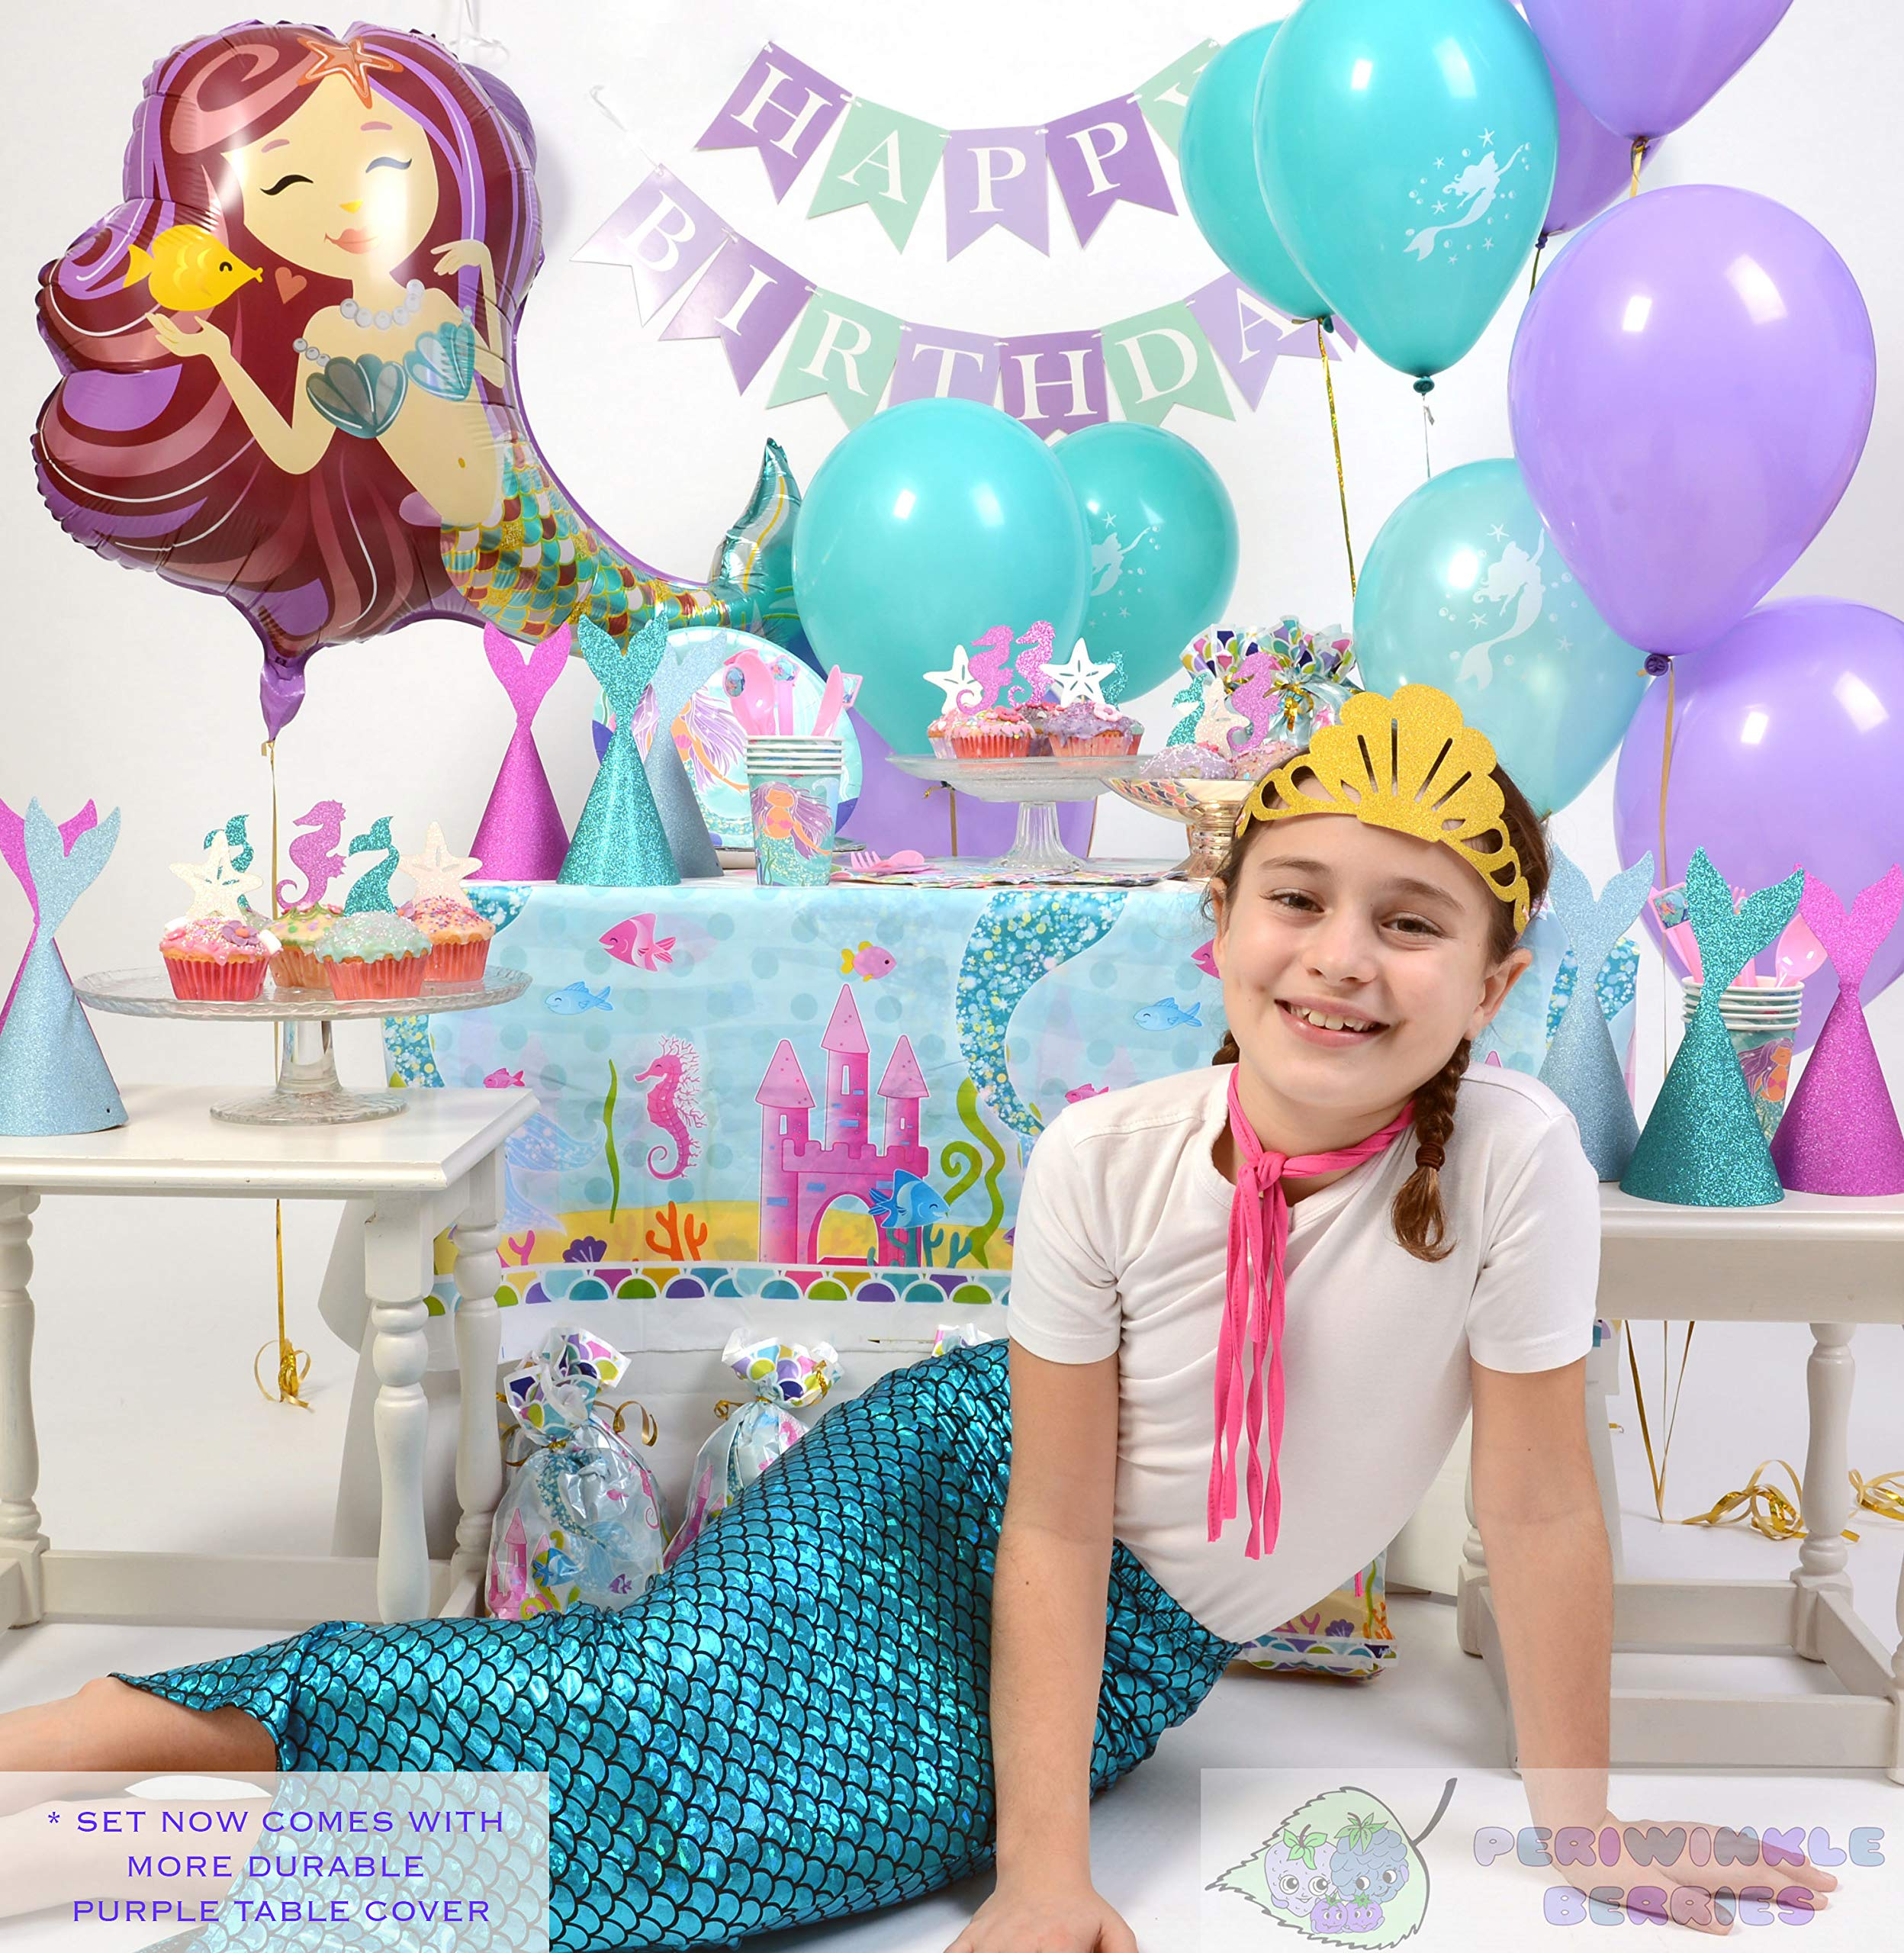 Mermaid Party Supplies - Complete Tableware and Decoration Deluxe Set - Plates, Cups, Utensils, Napkins, Table Cloth, Balloons, Happy Birthday Banner, Cupcake Topper, Favor Bags, Mermaid Hats & Crown by Periwinkle Berries (Image #5)